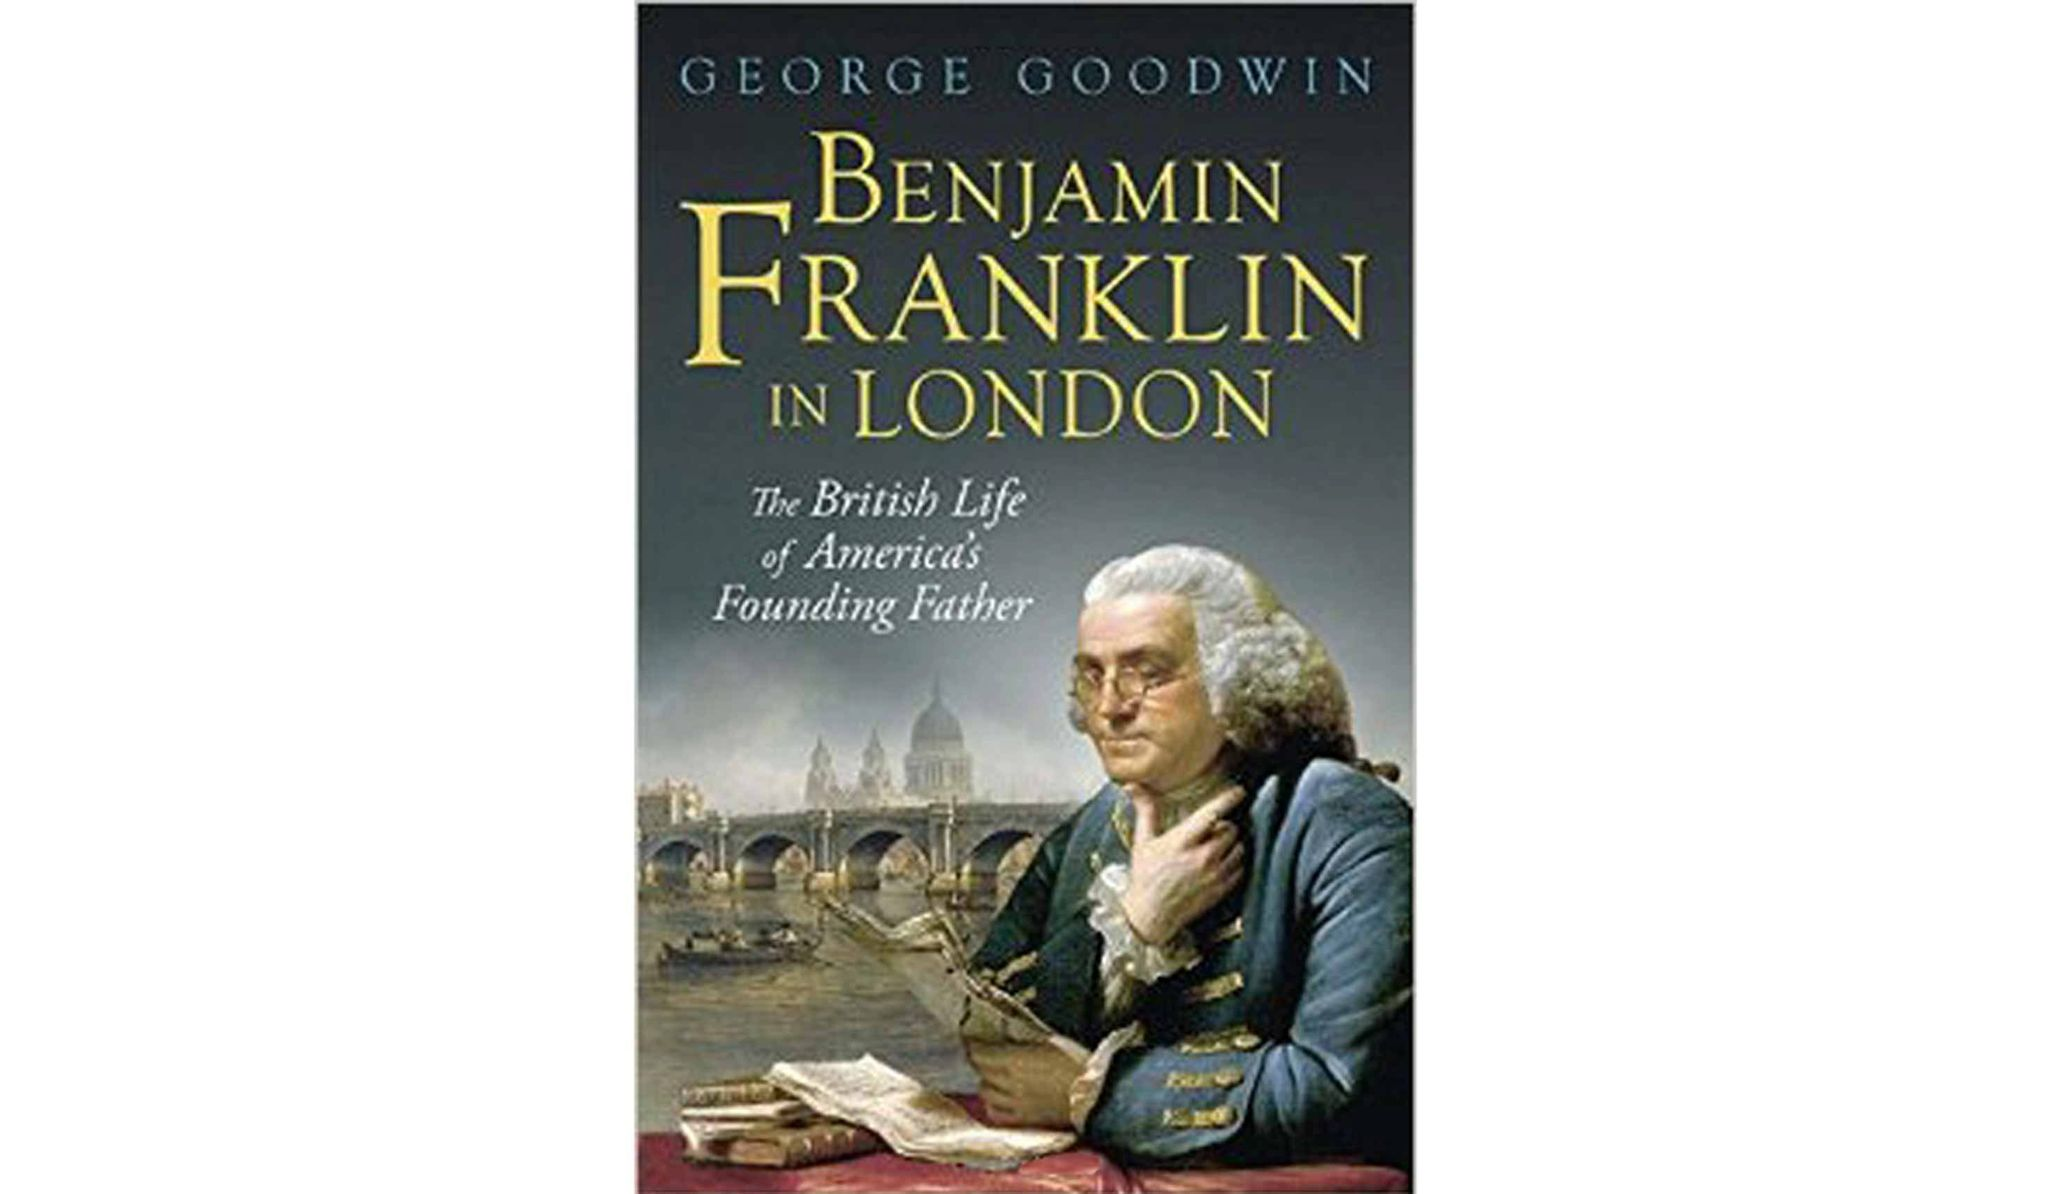 British life of Founding Father still of interest